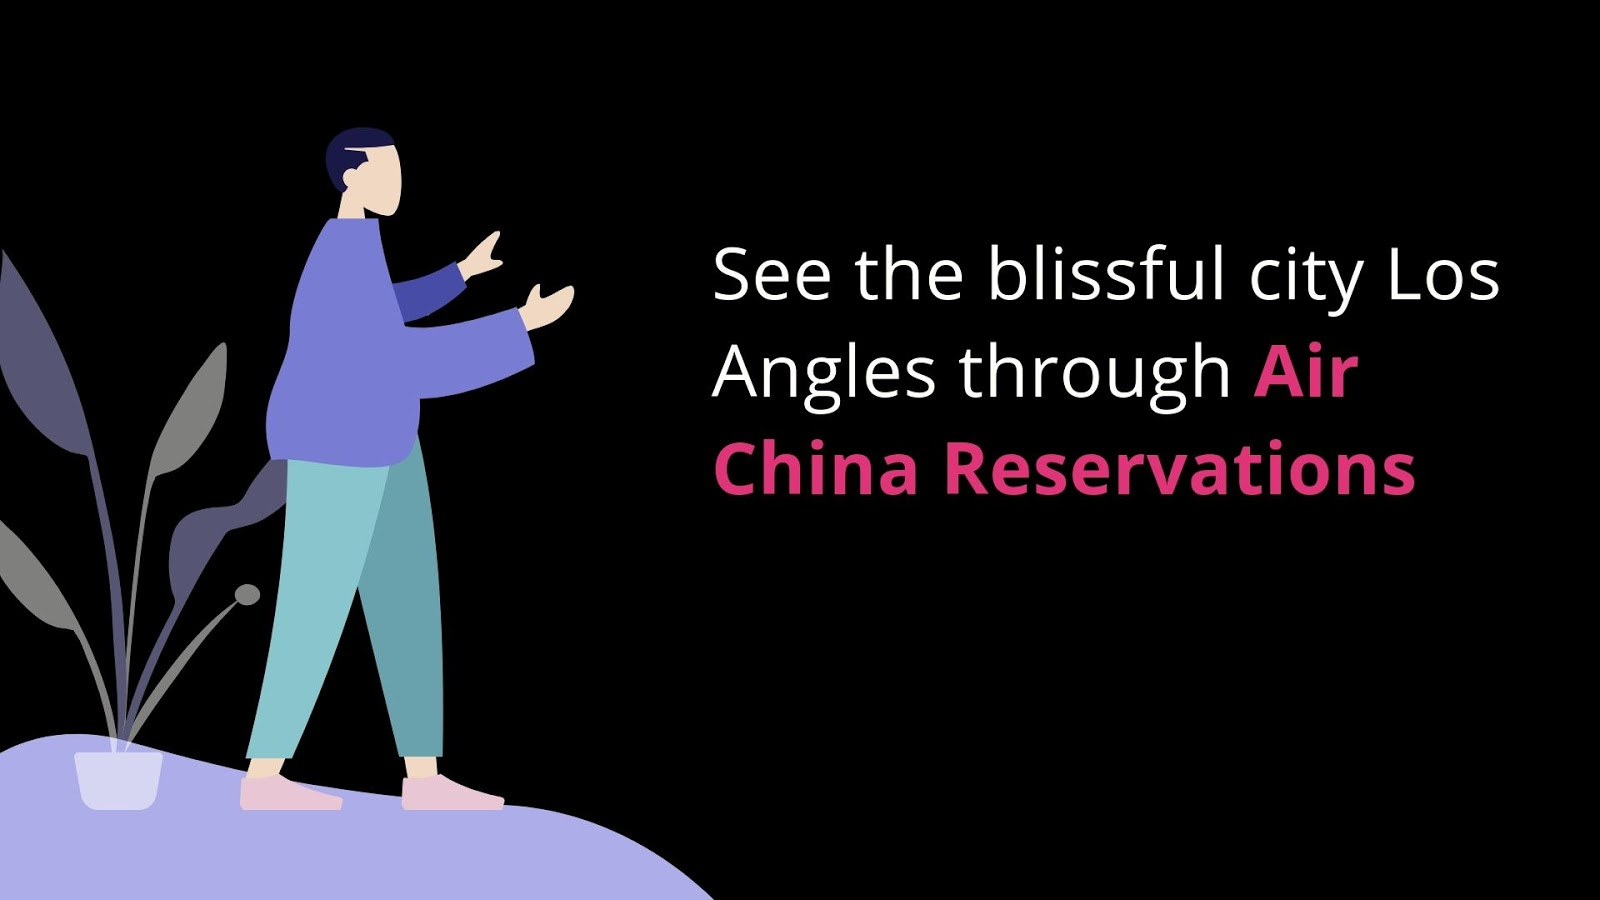 Air China Reservations